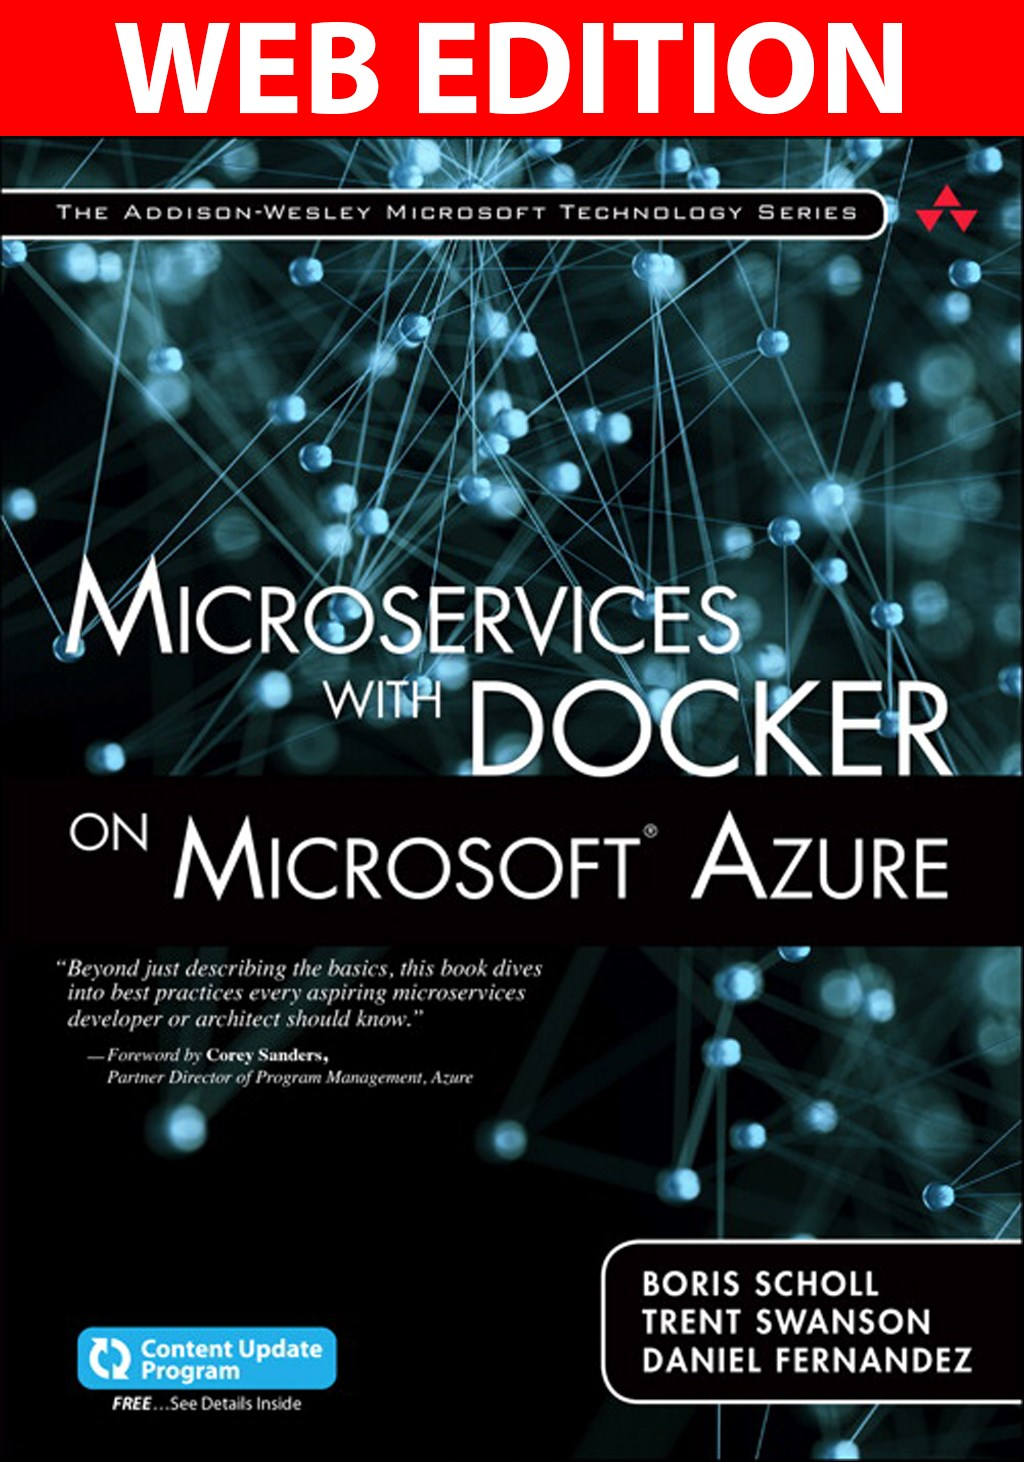 Microservices with Docker on Microsoft Azure (Web Edition and Content Update Program)